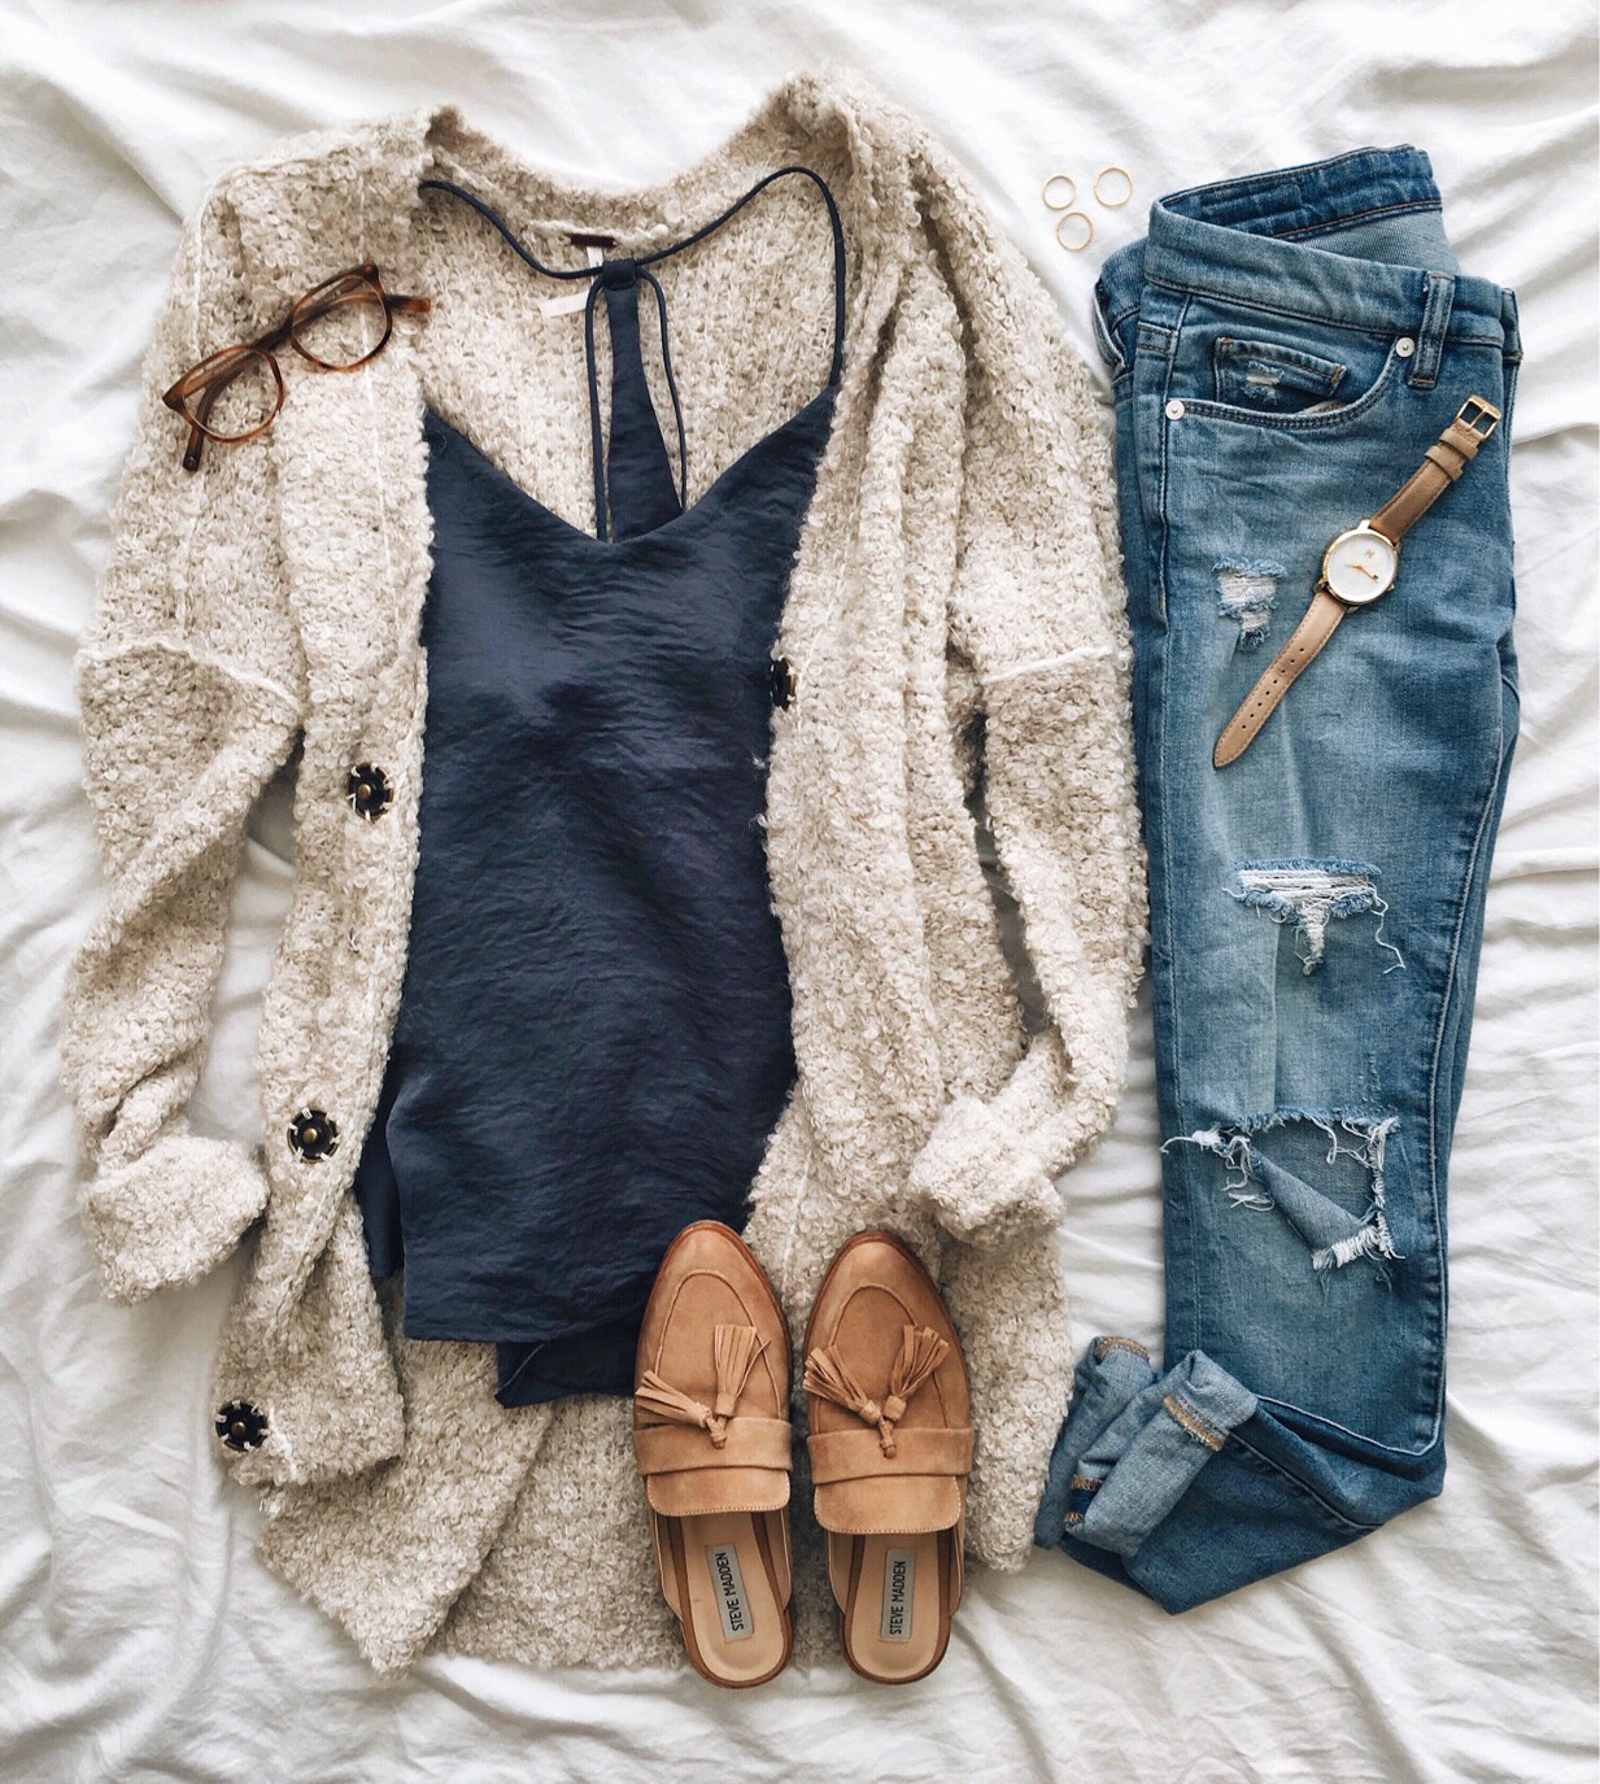 livvyland-blog-olivia-watson-instagram-roundup-austin-texas-cozy-winter-outfit-satin-cami-cardigan